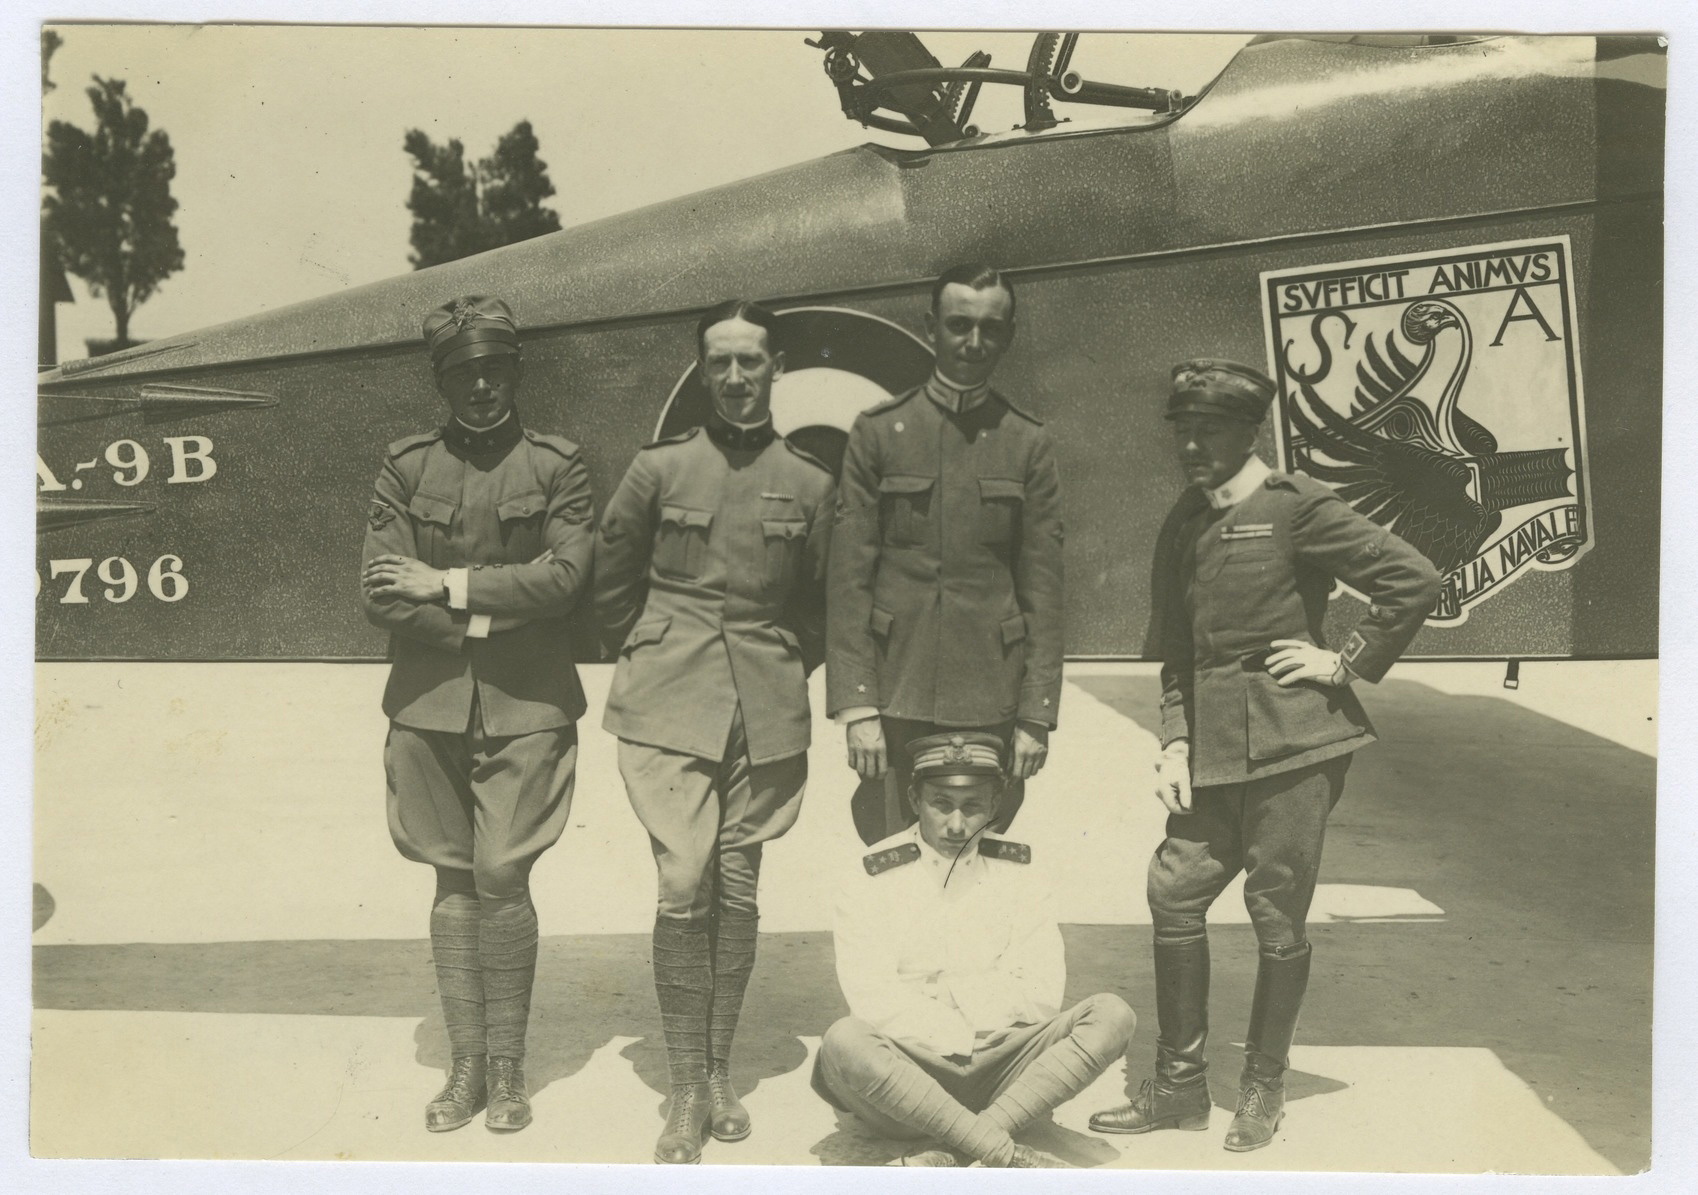 Pilots of the Italian First Naval Squadron, which was engaged to support the Italian Navy.